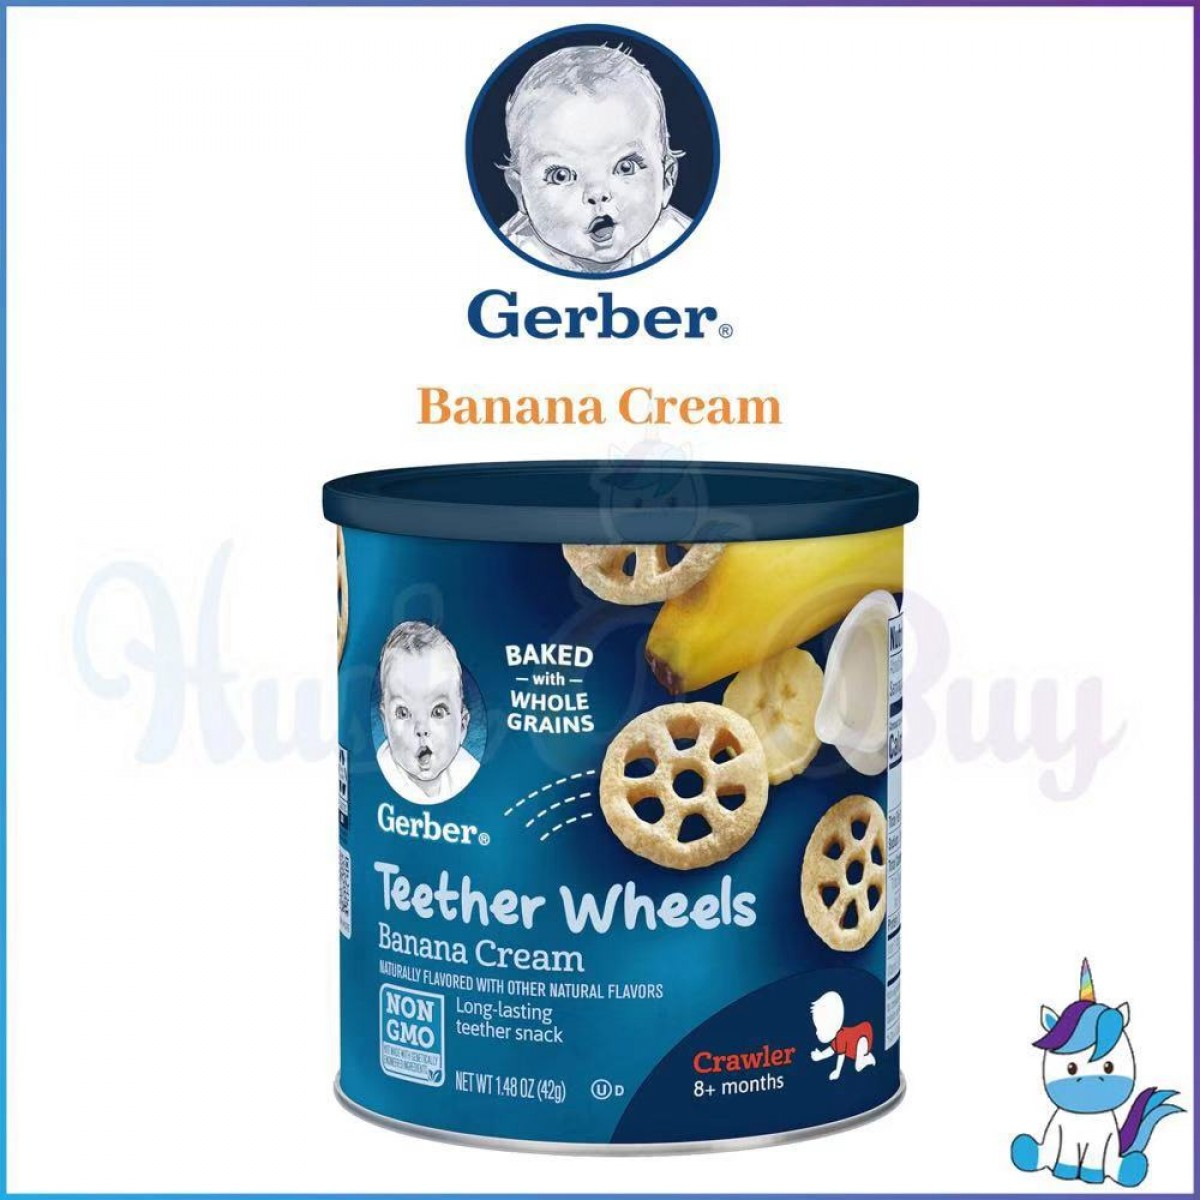 Gerber Teether Wheels 8+ months - Banana Cream